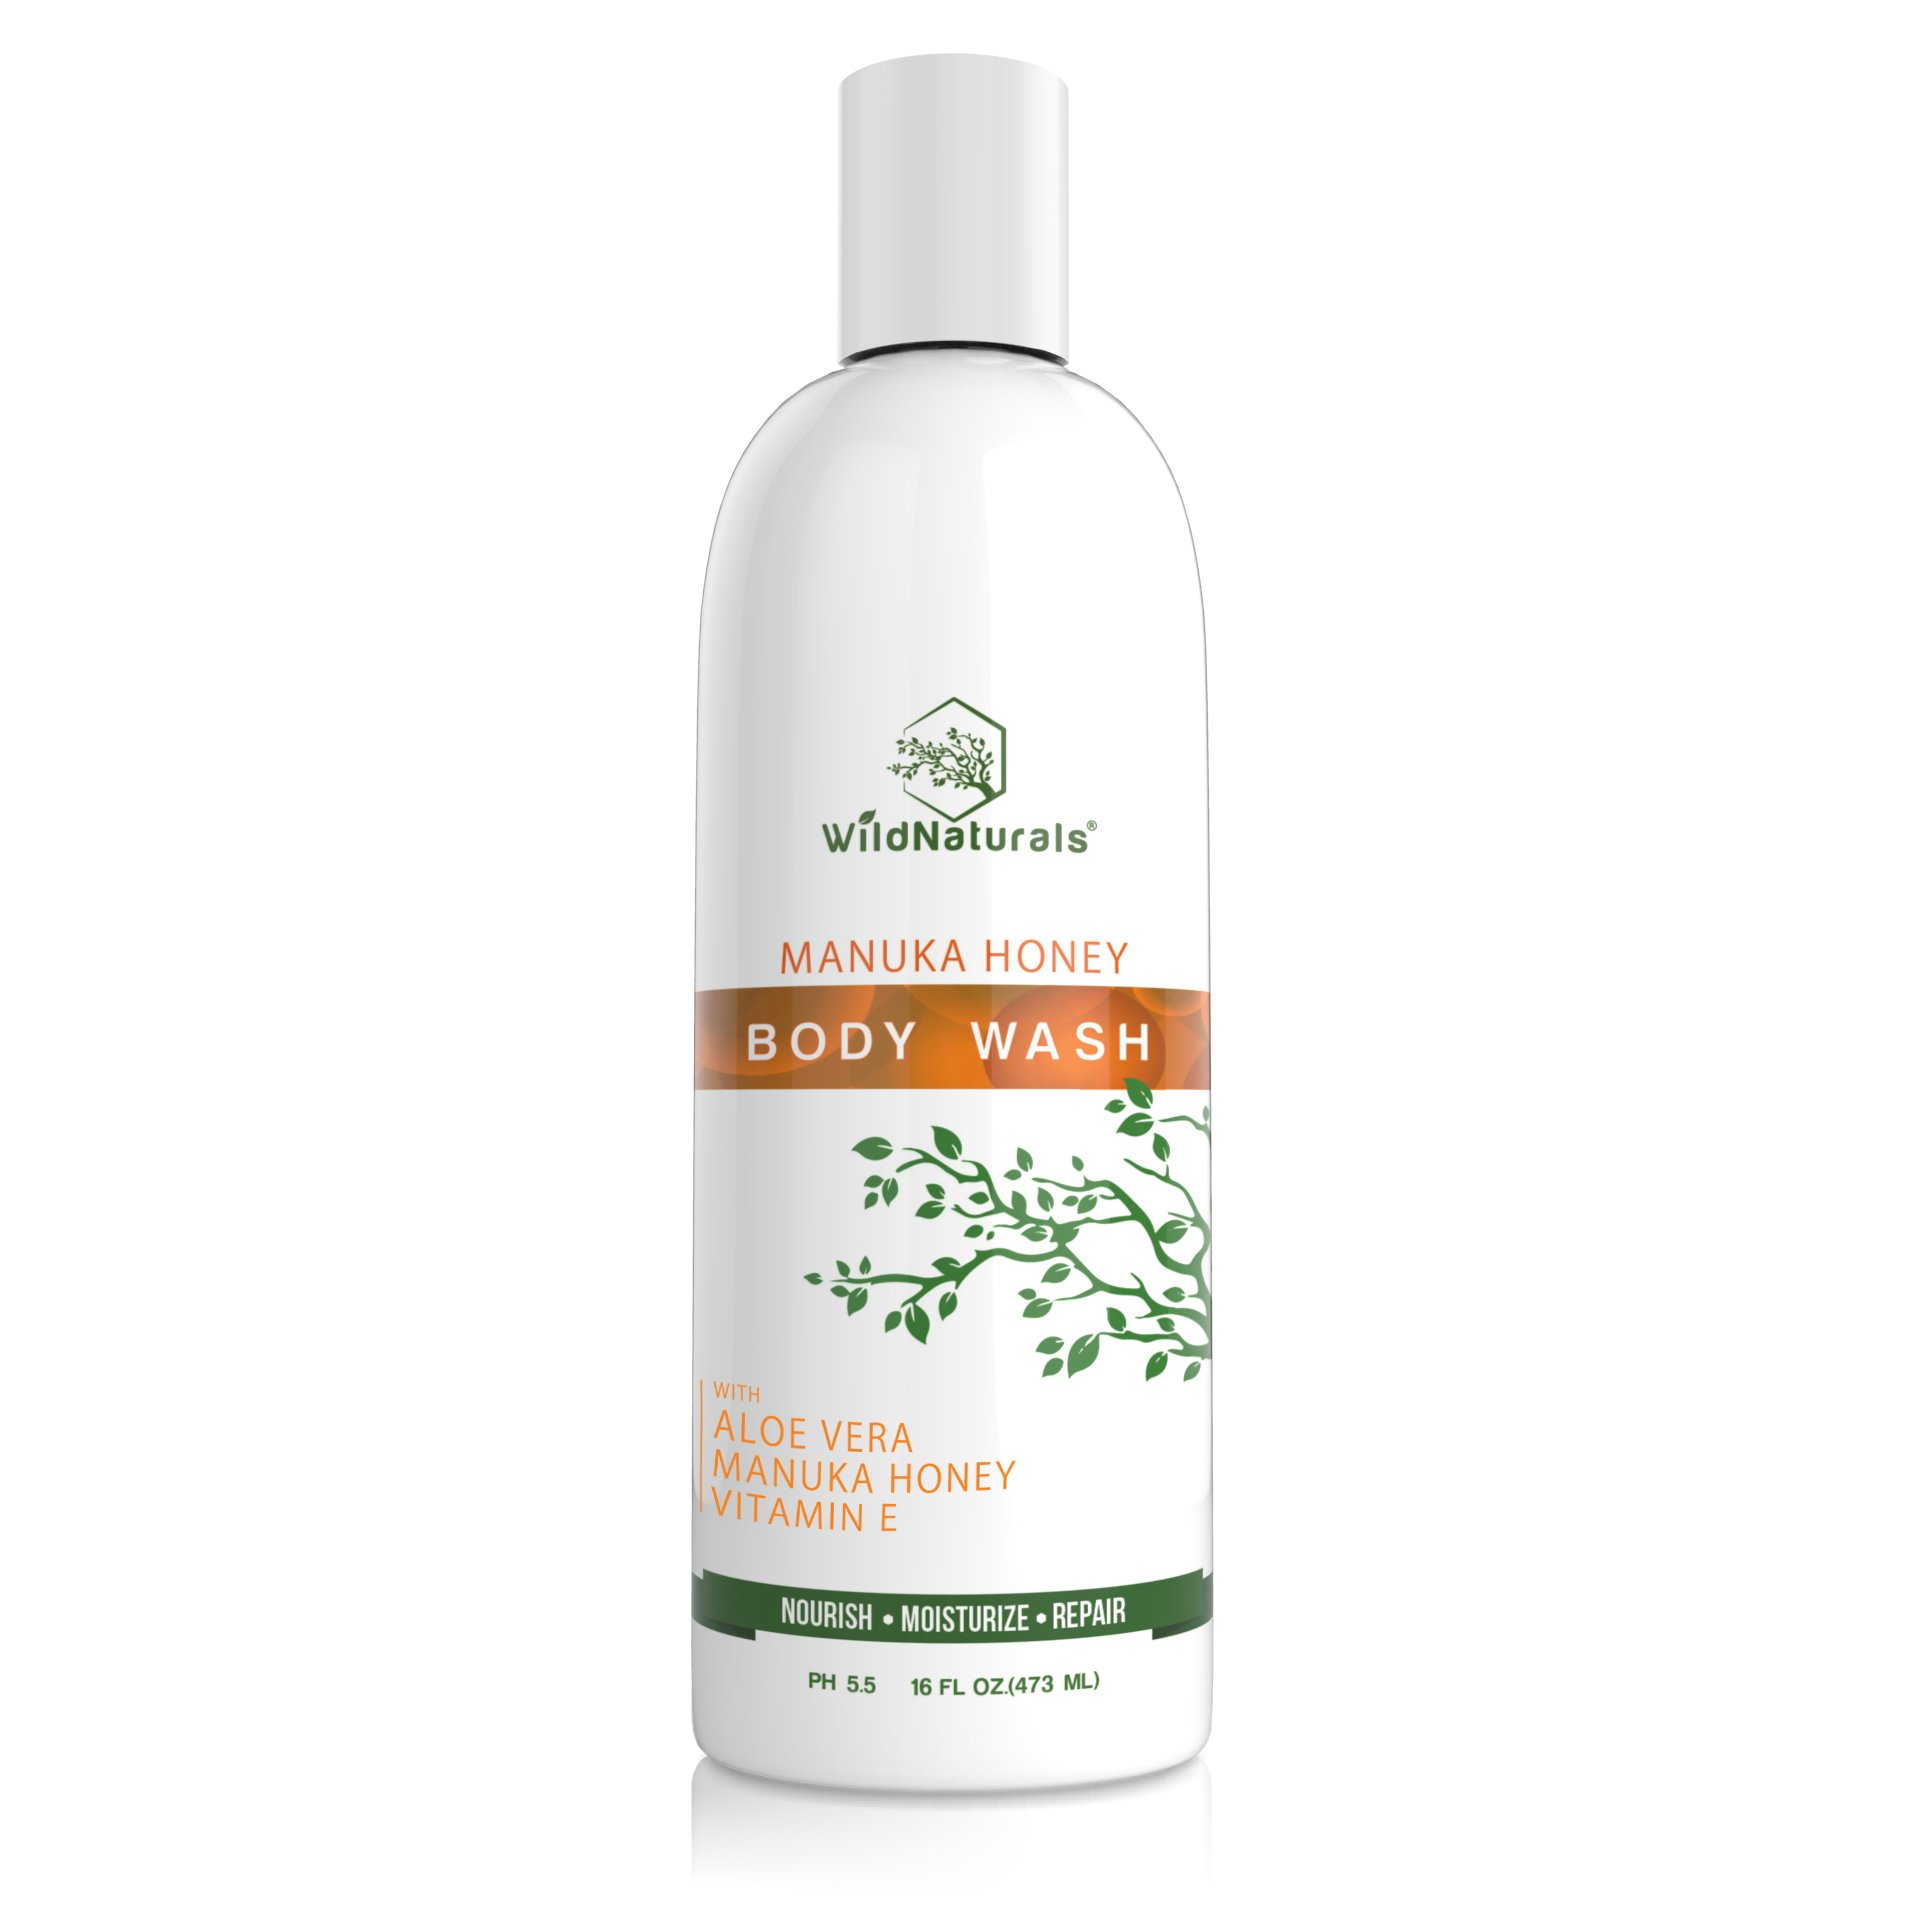 Natural Sulfate Free Body Wash : With Manuka Honey + Aloe Vera (First Ingredient), Bath and Shower Gel, Unscented, Organic, Plant-Based, pH Balanced and Moisturizing for Sensitive Skin, 16 Ounce